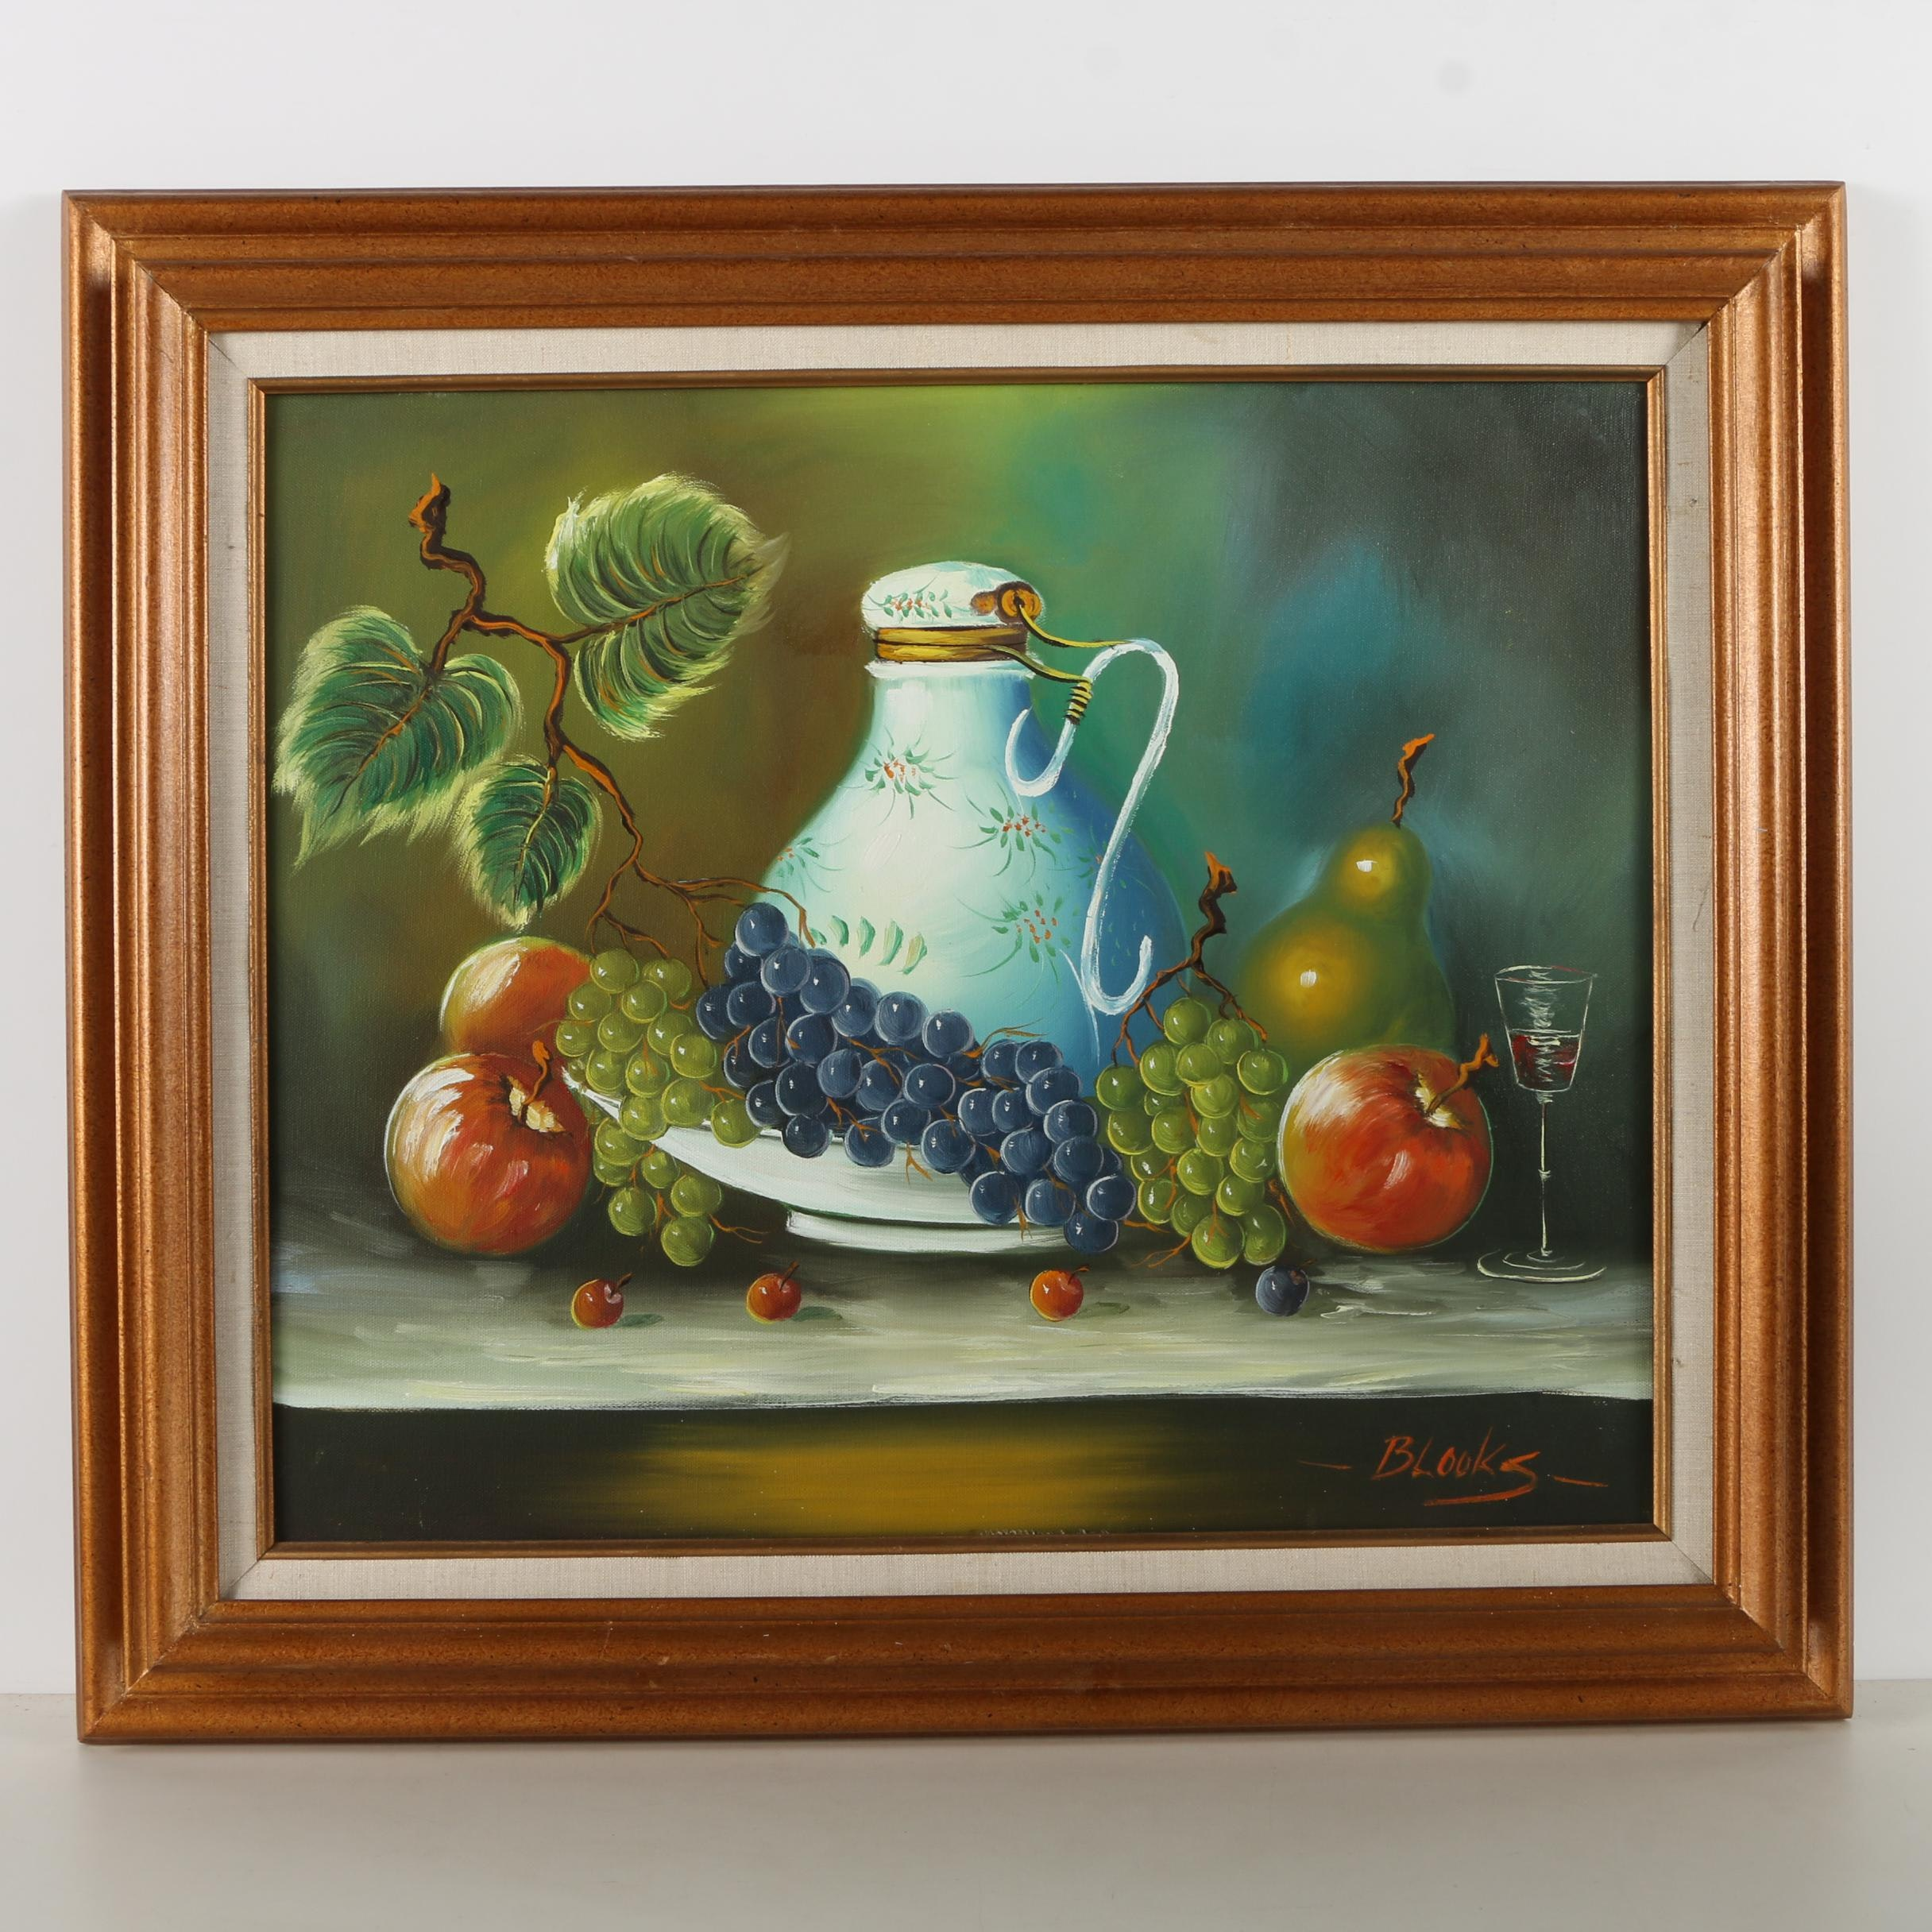 Blooks Oil Painting on Canvas of a Still Life